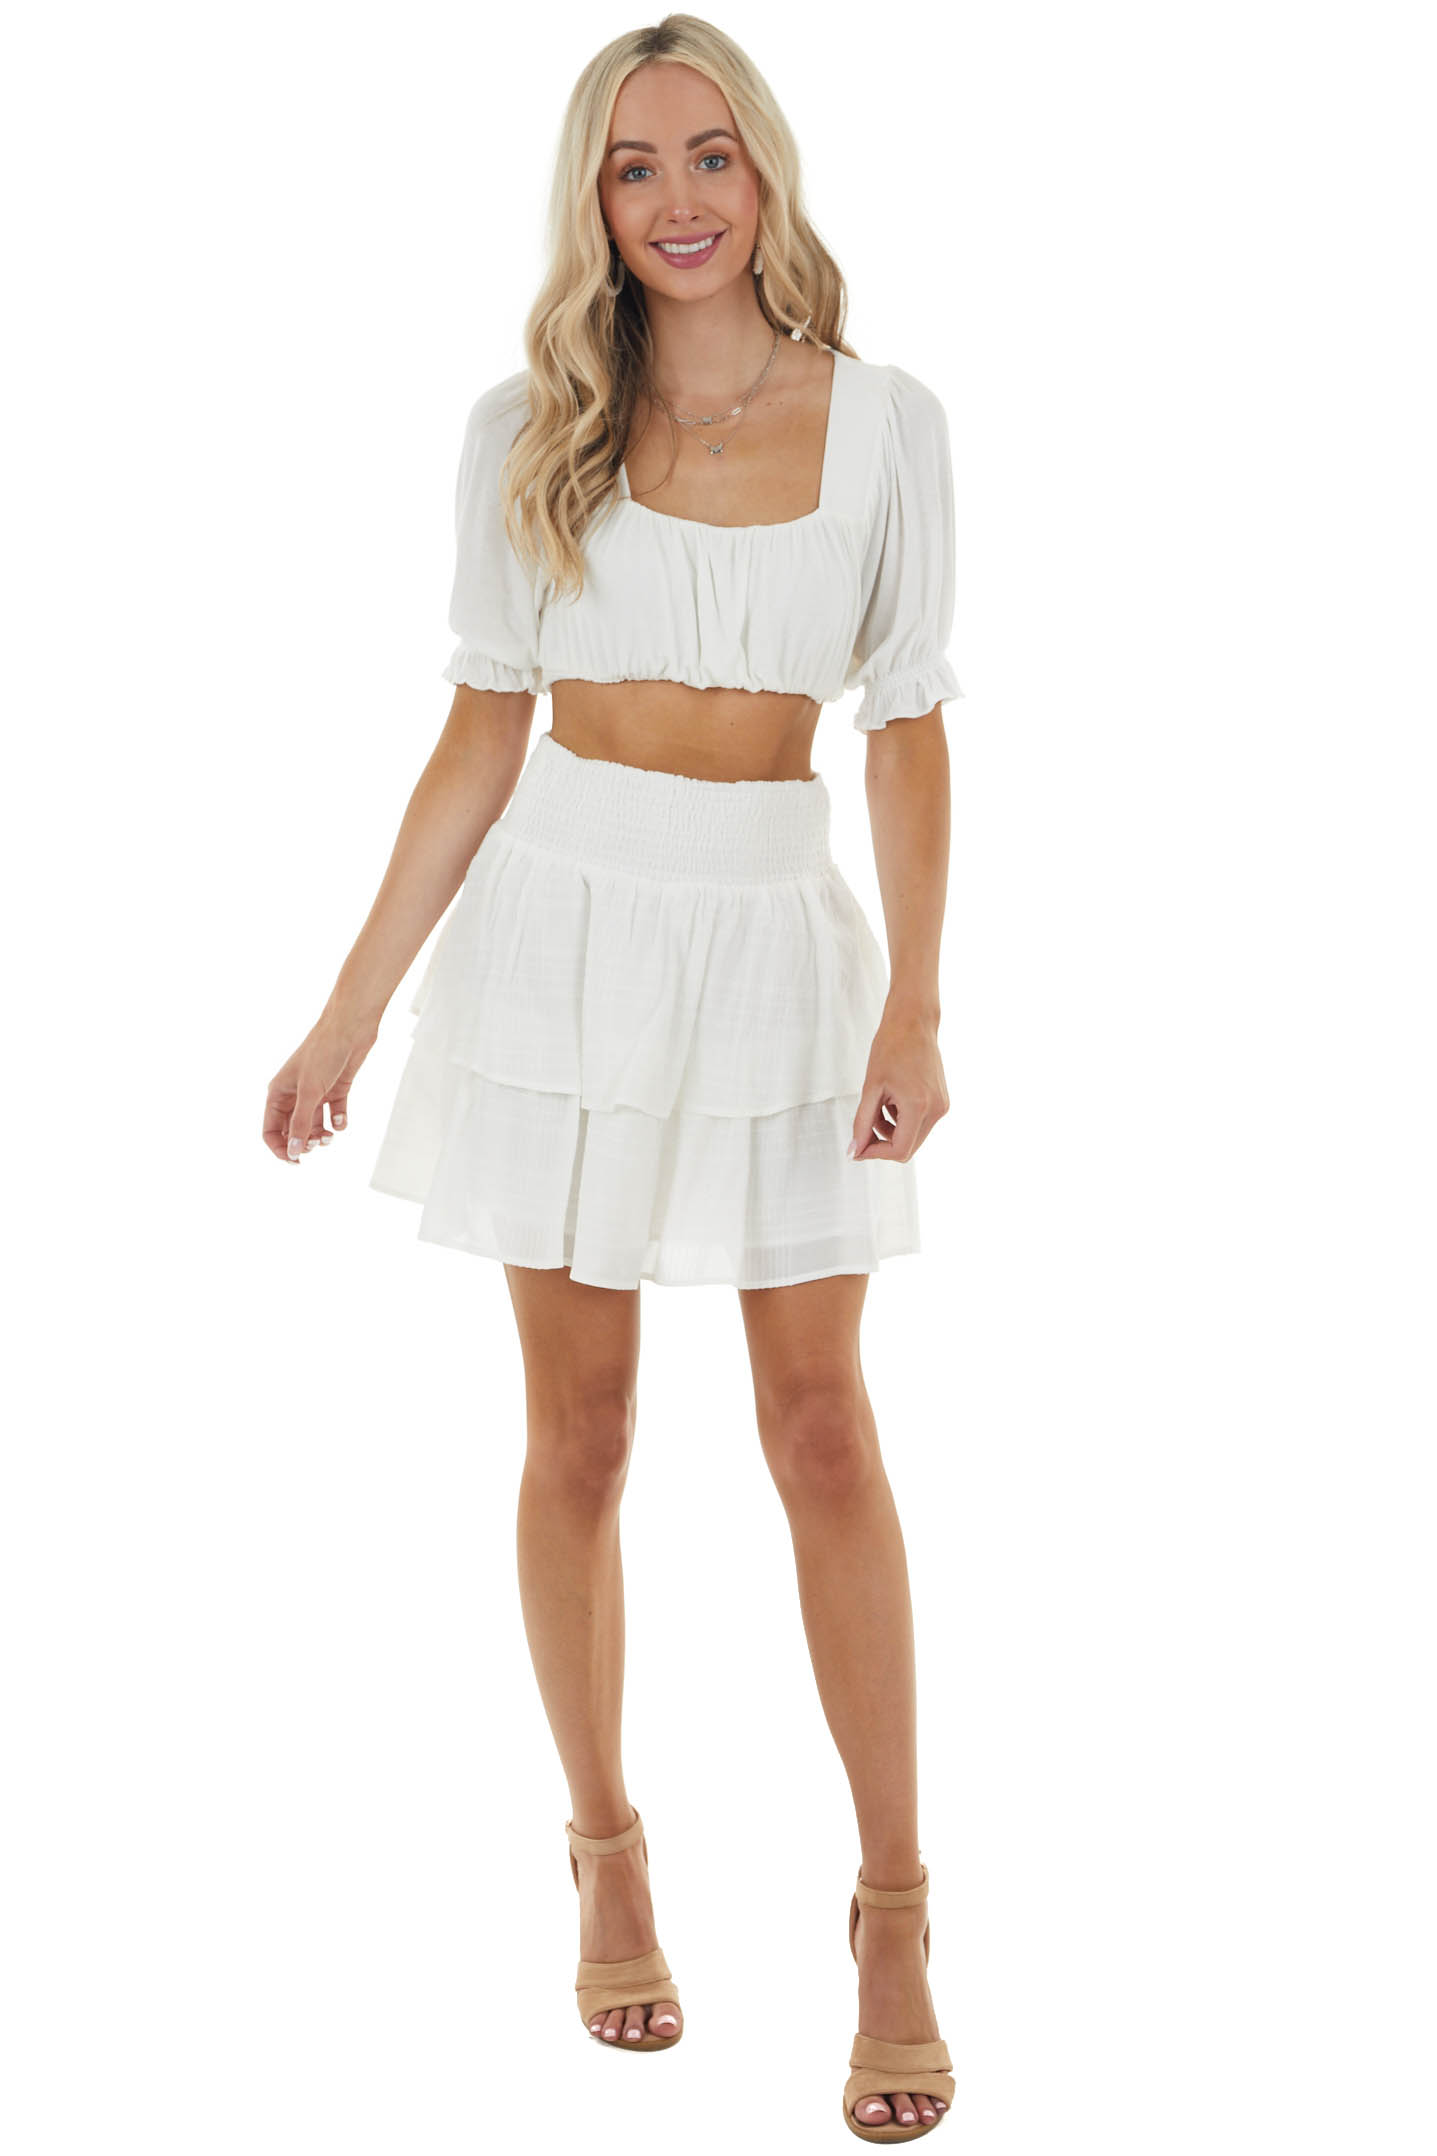 Ivory Tiered Textured Woven Mini Skirt with Smocked Waist